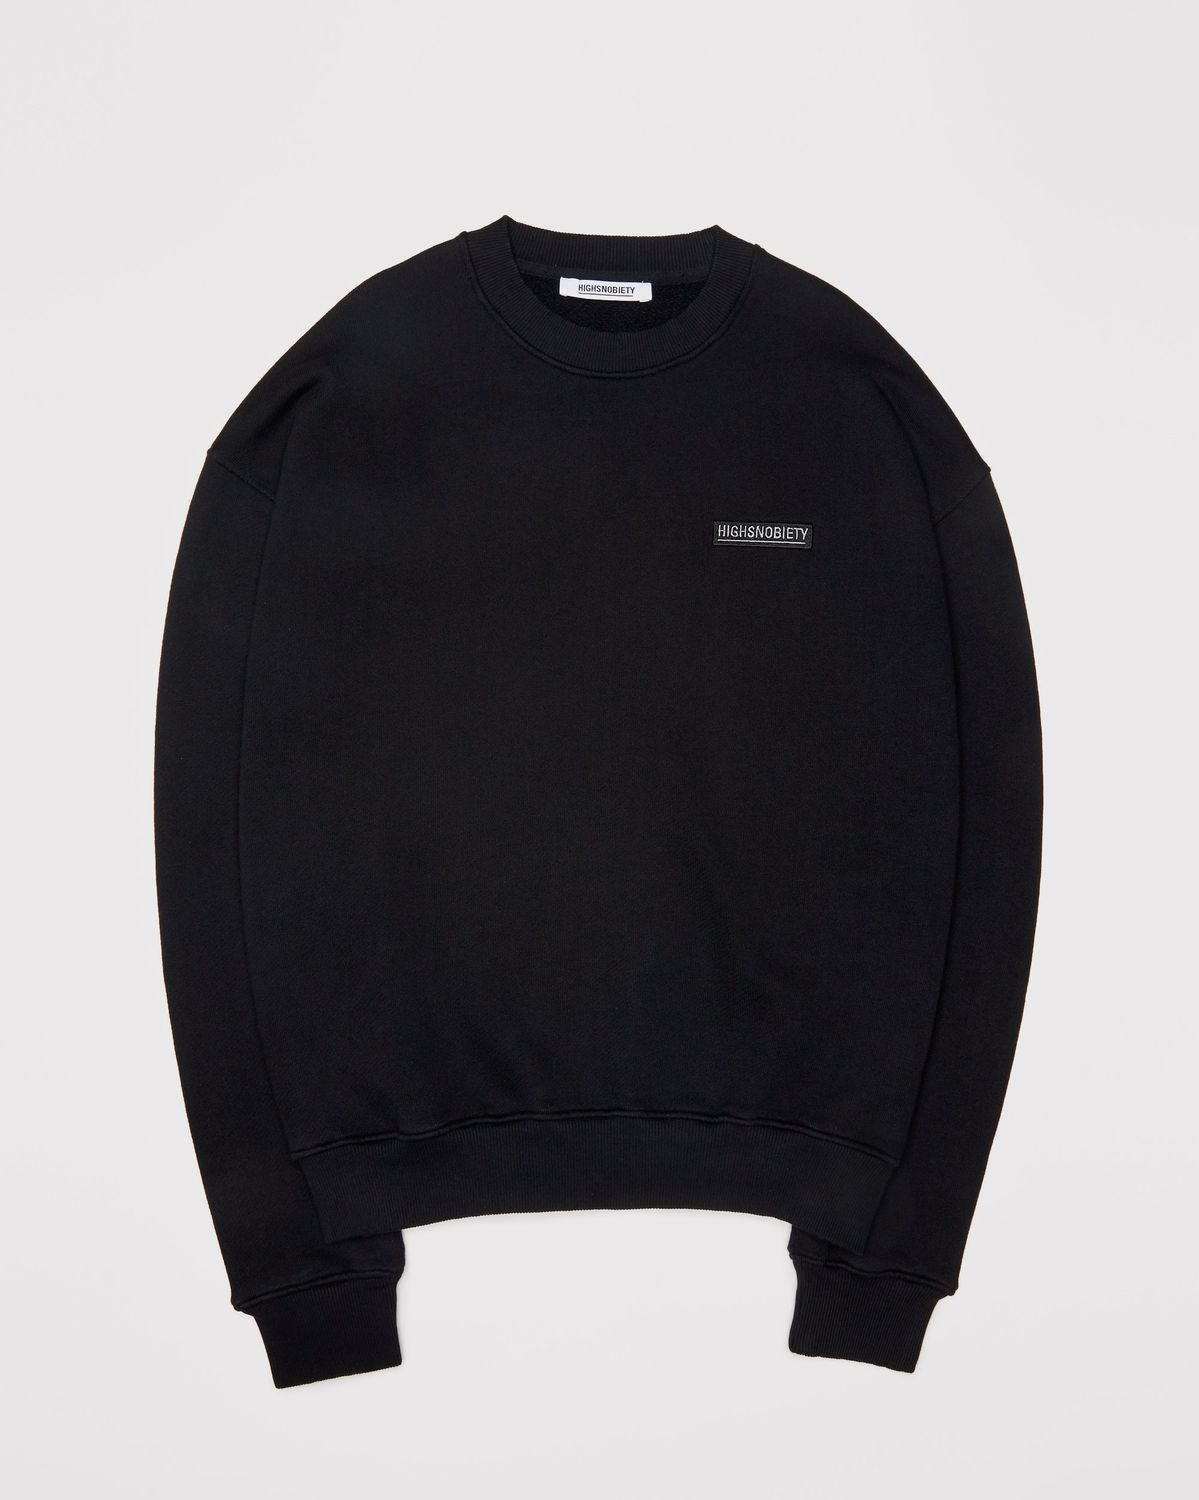 Highsnobiety Staples - Sweatshirt Black - Image 1